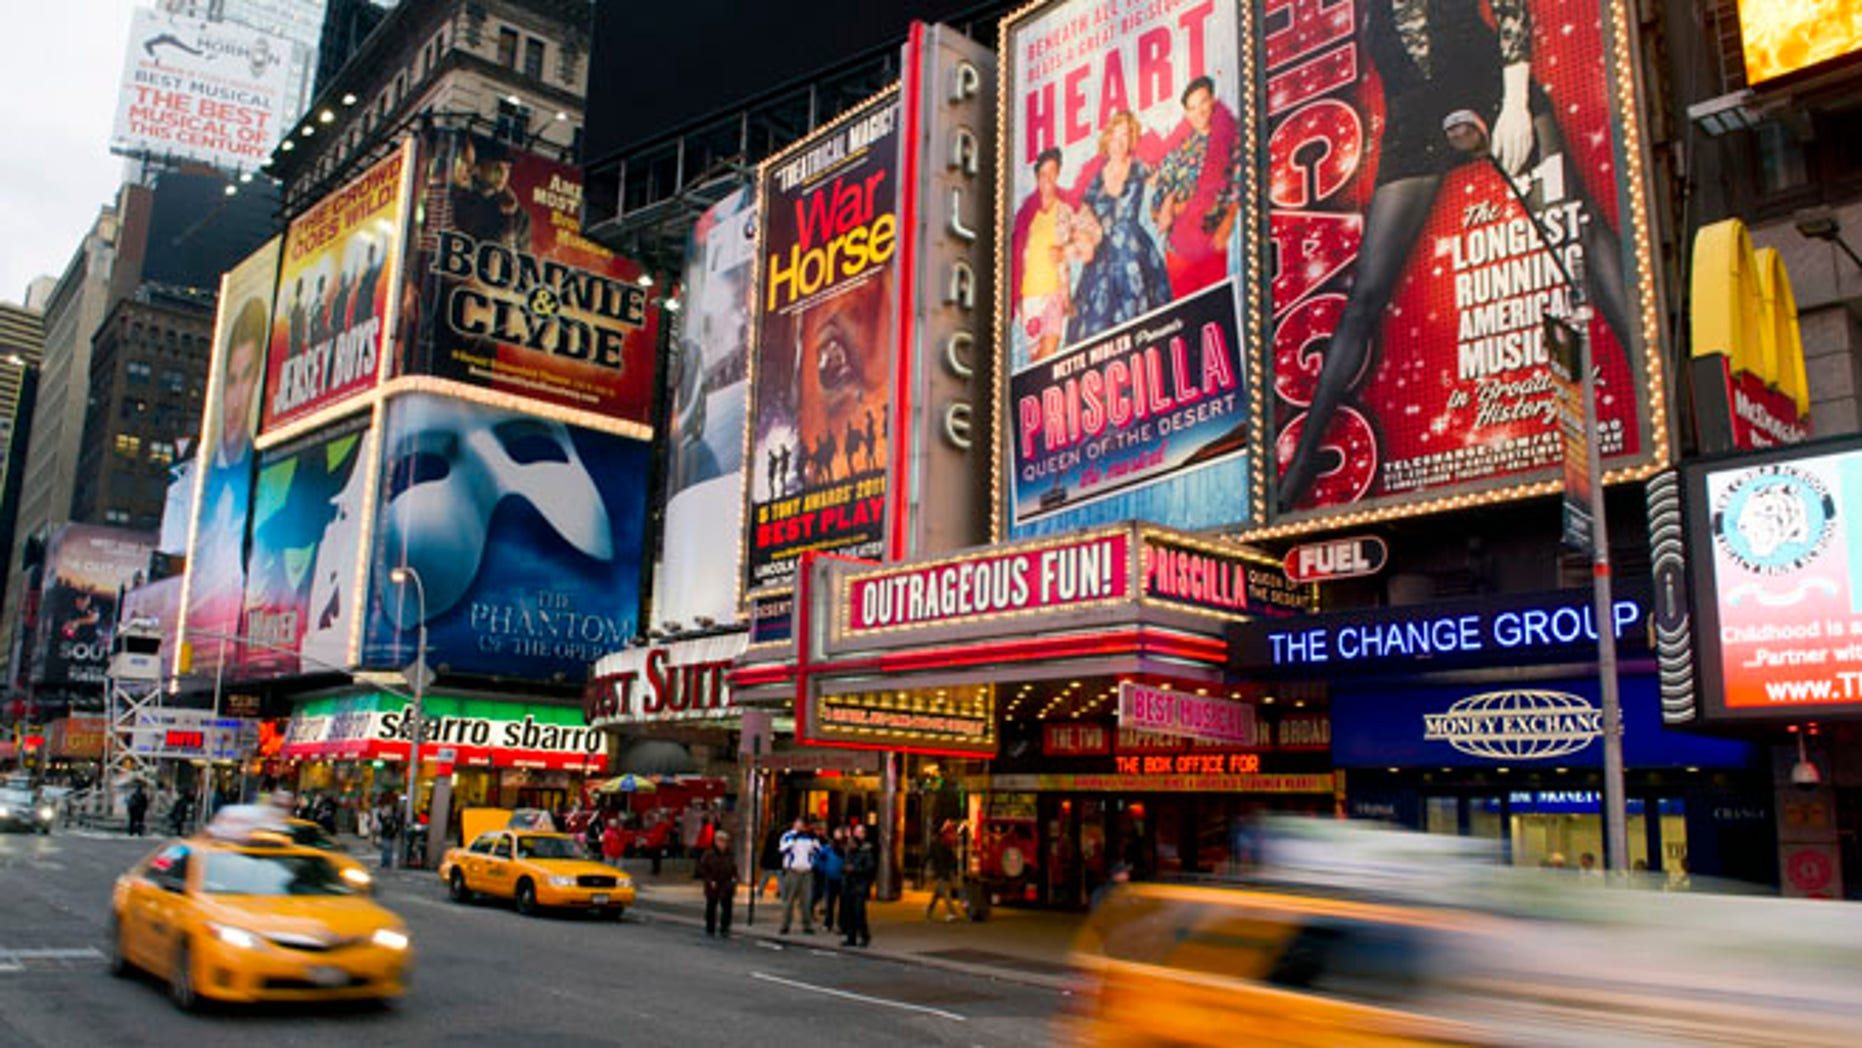 Jan. 19, 2012: This file photo shows billboards advertising Broadway shows in Times Square, in New York.